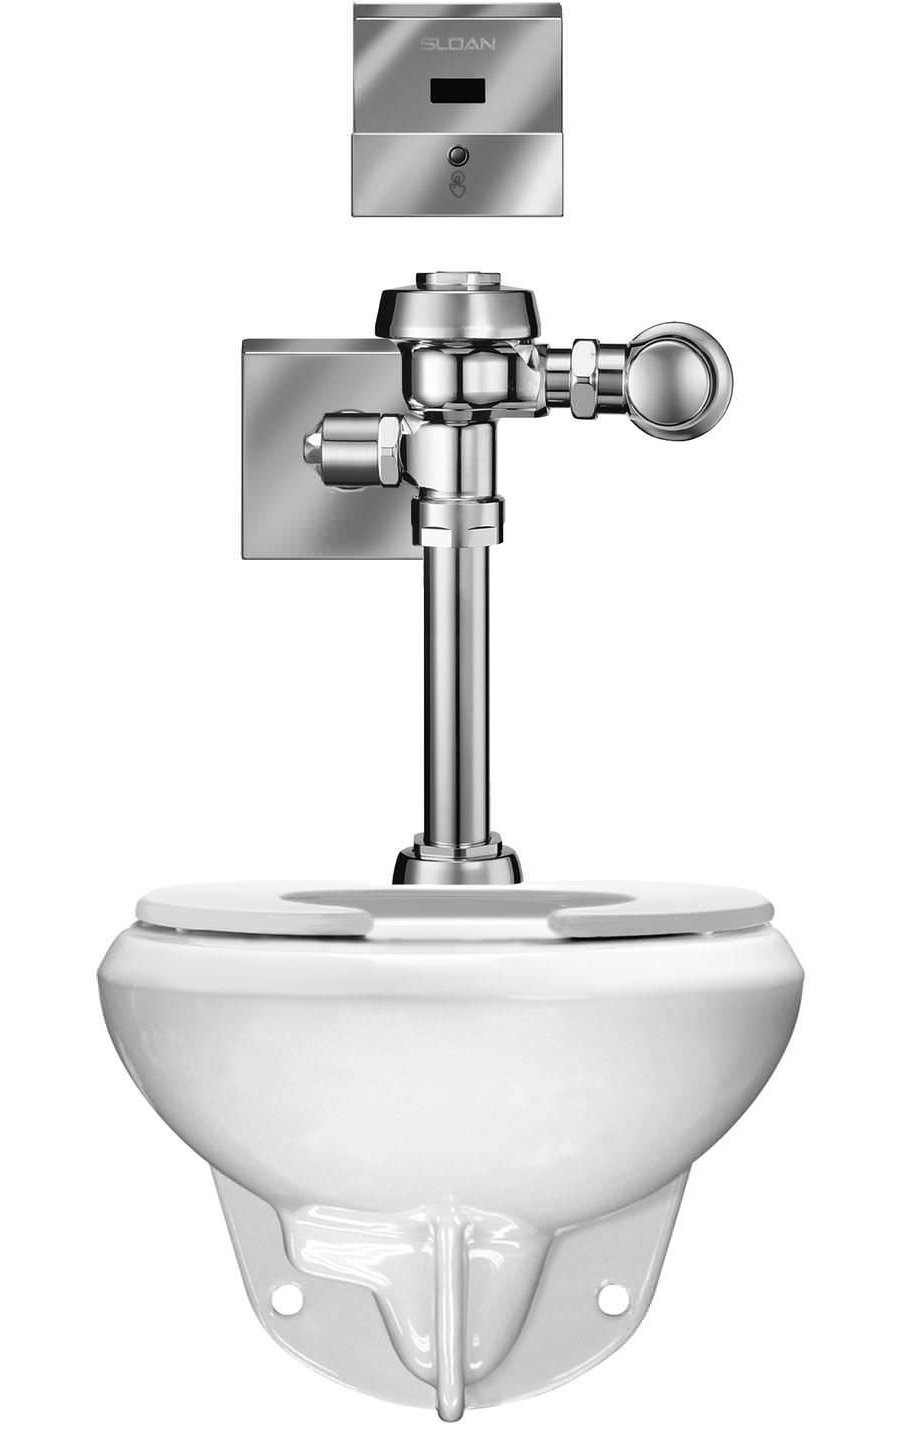 commercial-toilet